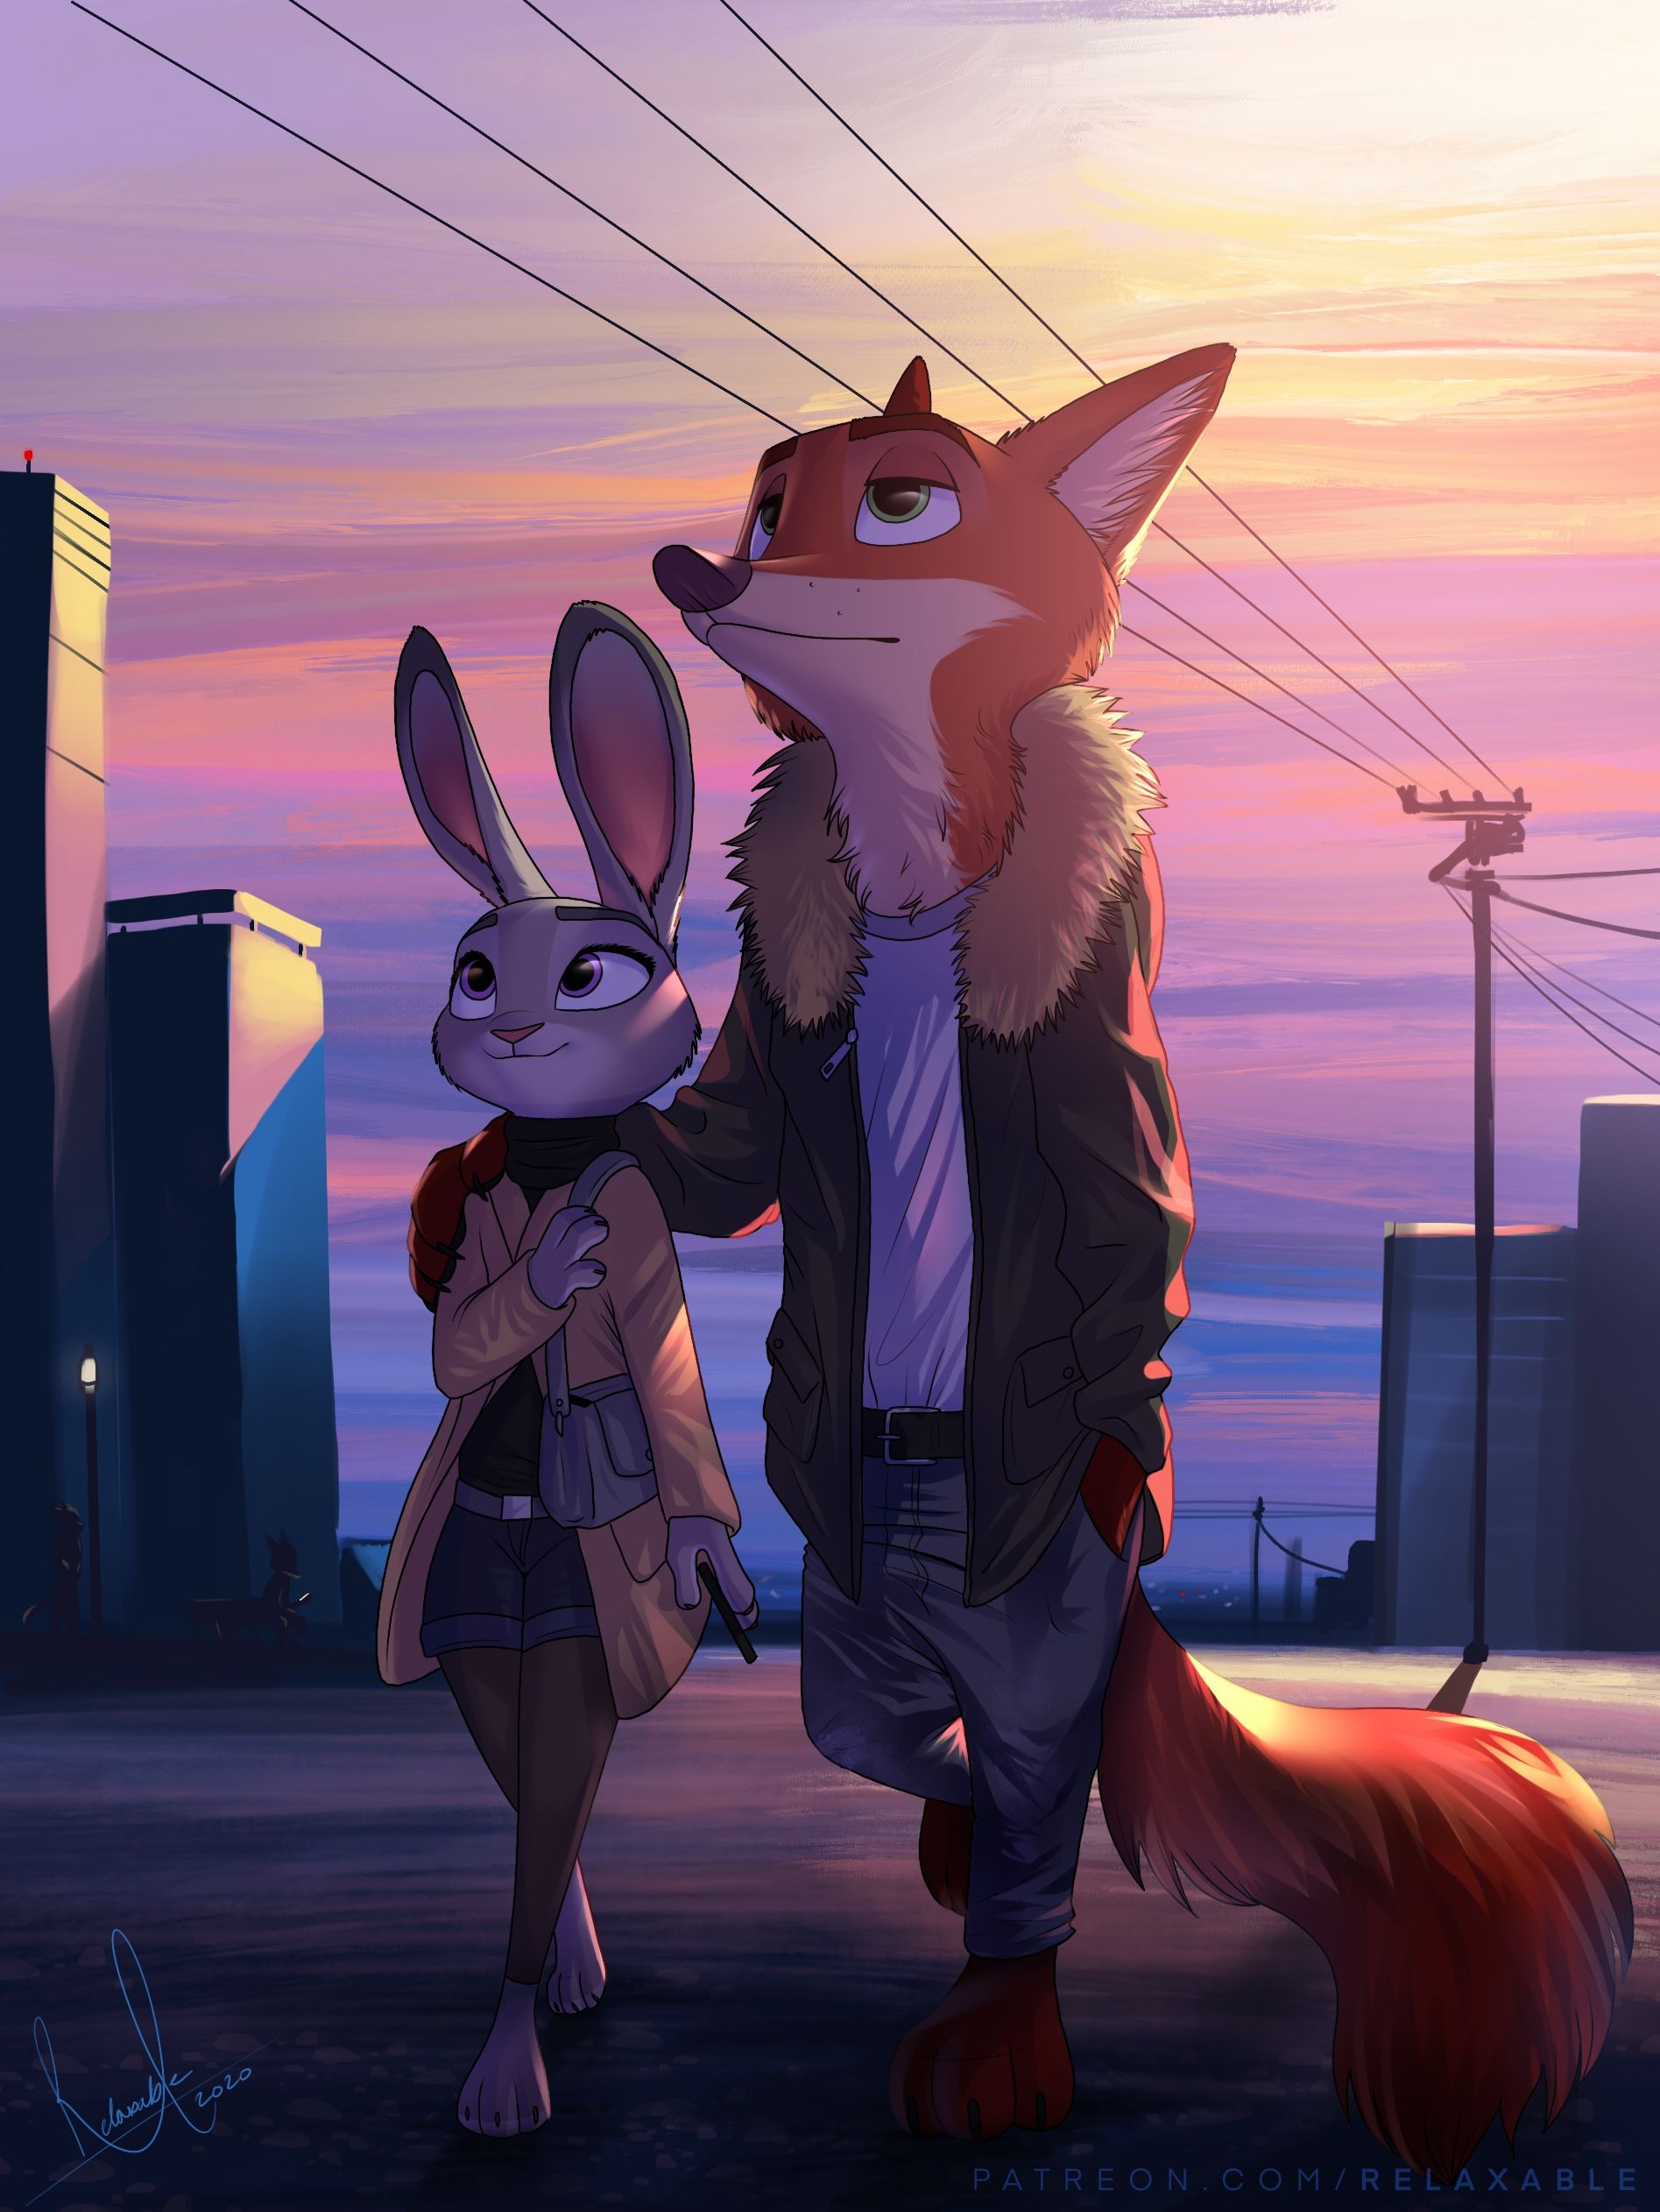 Favoloso Sightseeing by RelaxableFur on DeviantArt in 2020 | Zootopia anime RU73